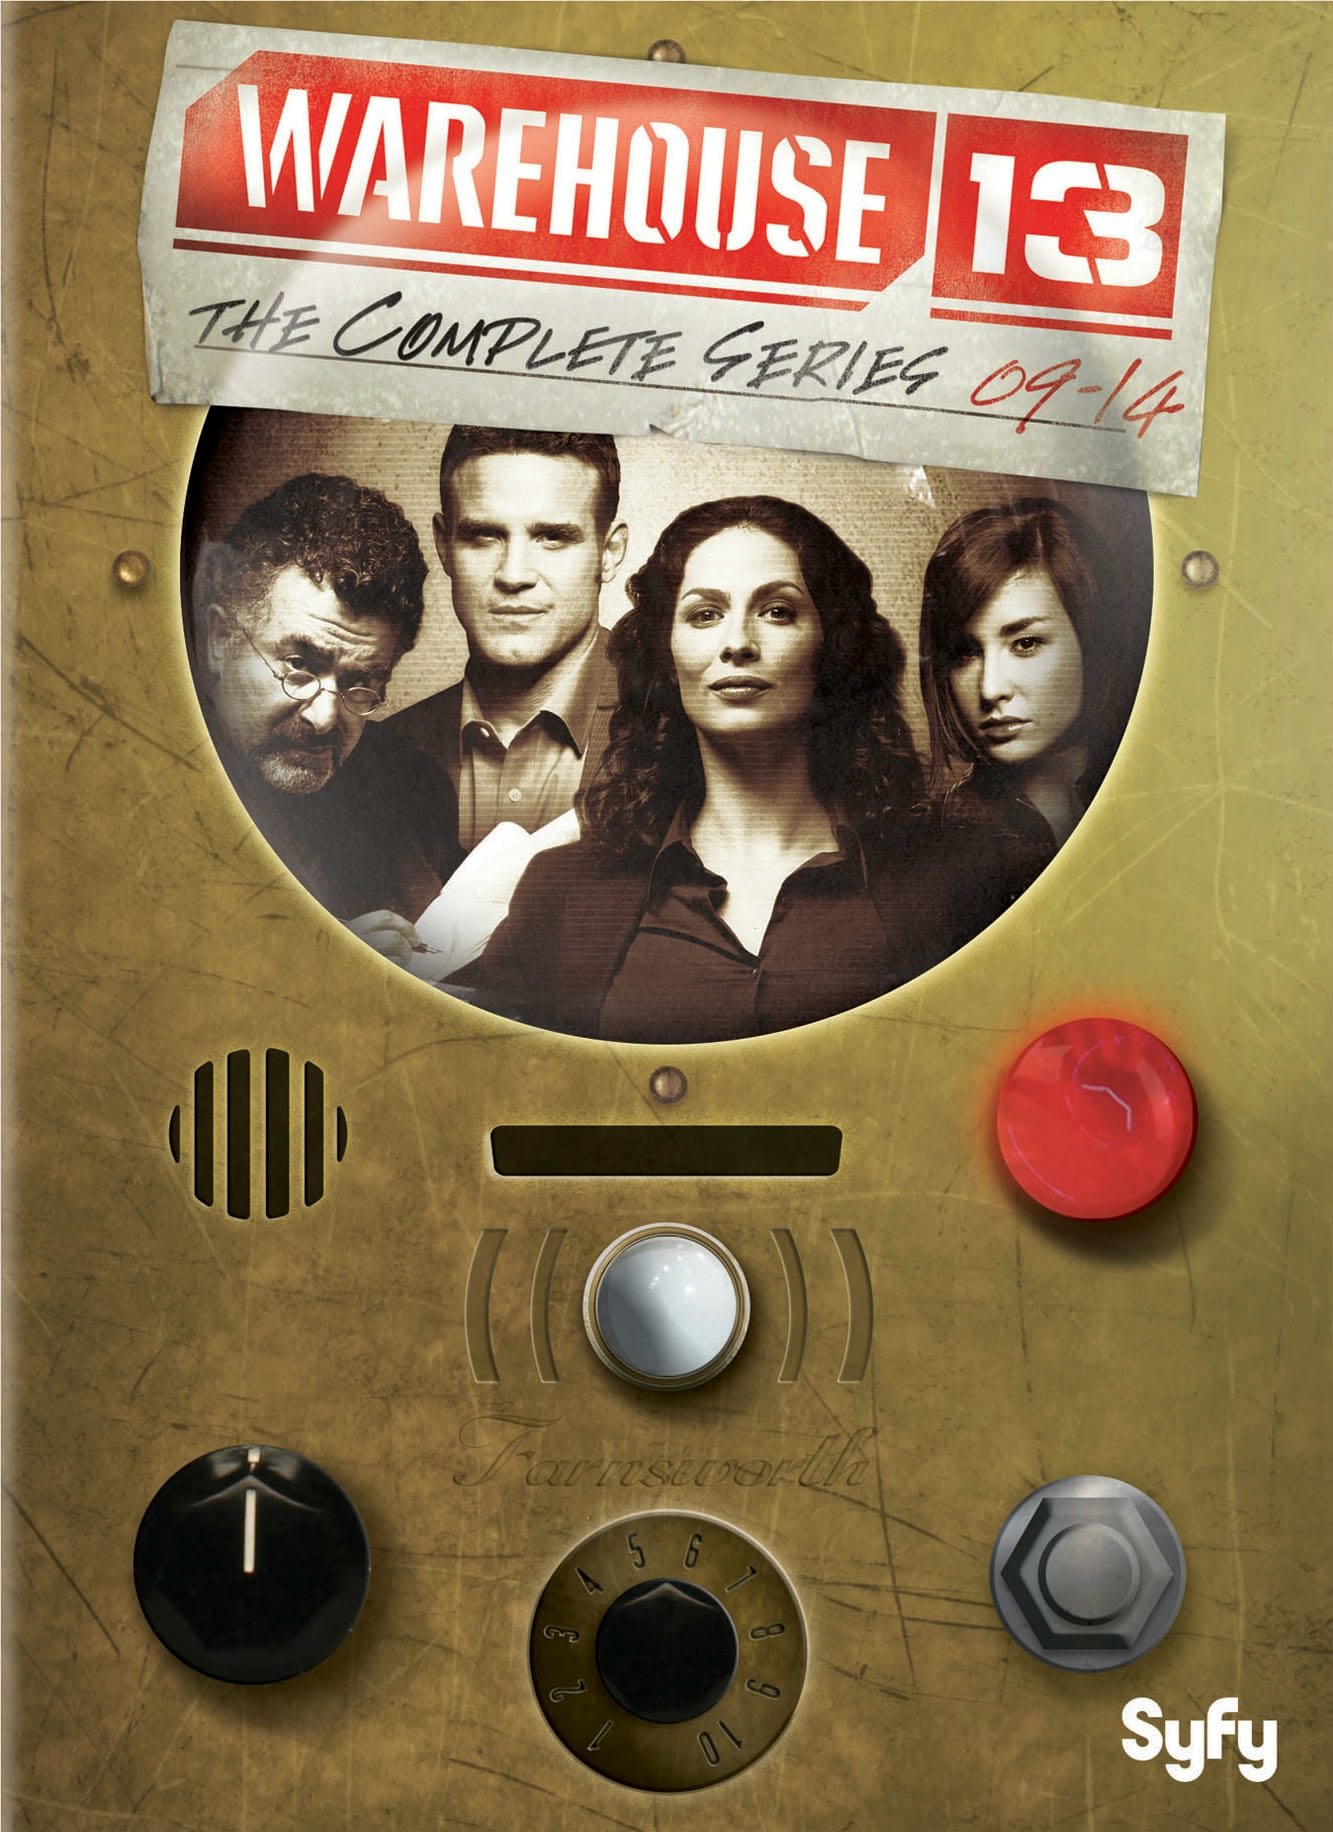 Warehouse 13: The Complete Series [DVD]